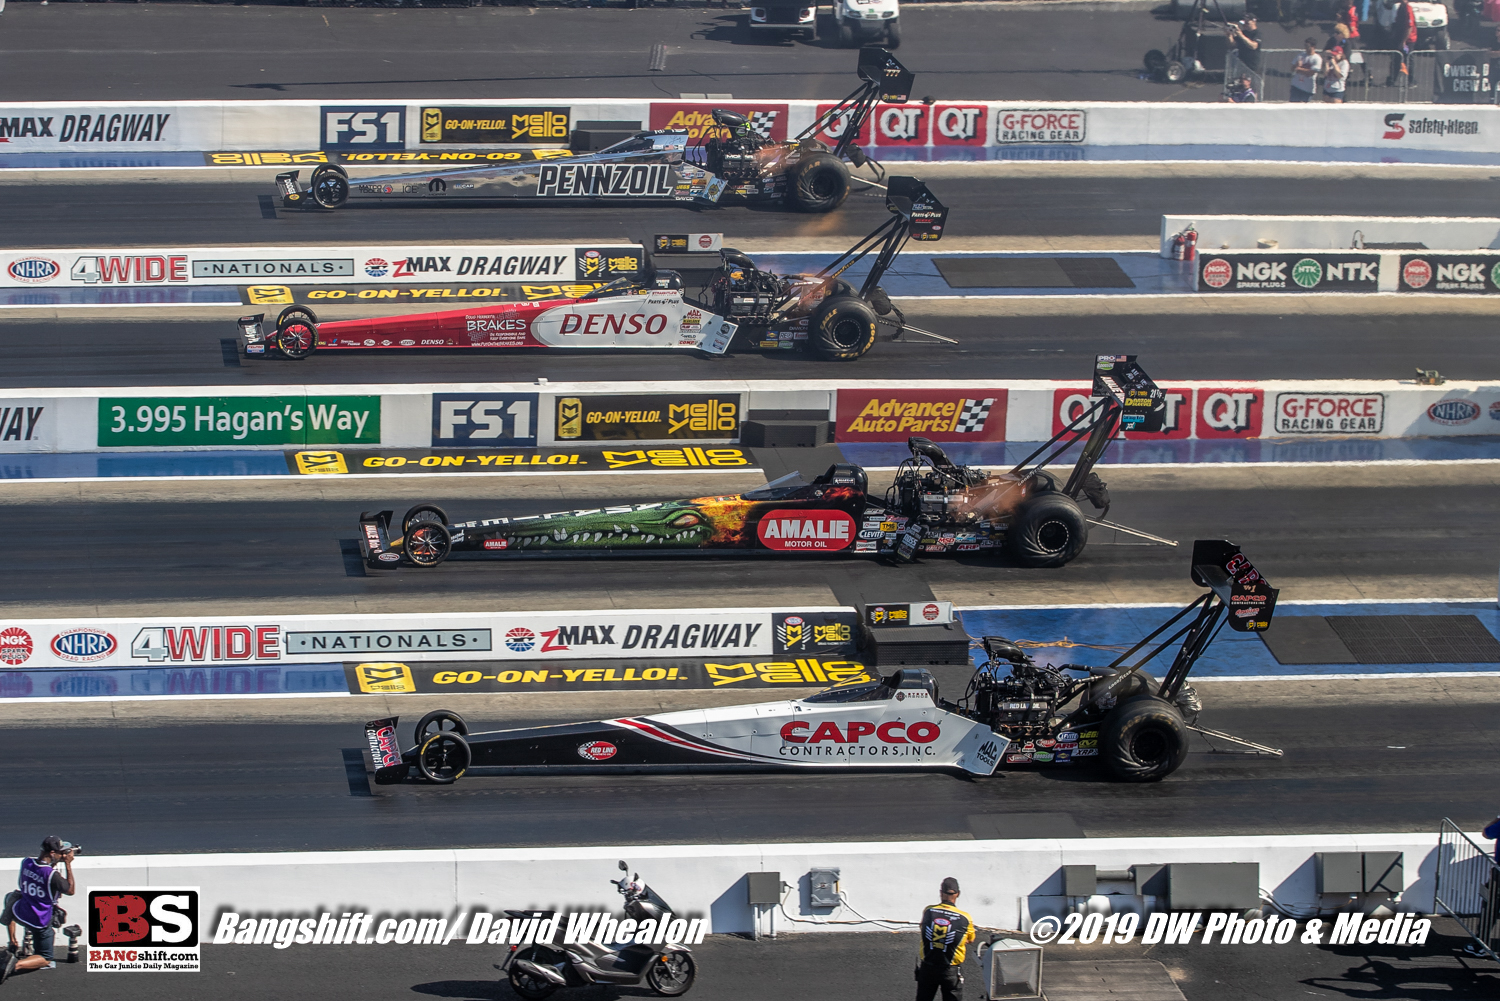 NHRA Top Fuel Champion Torrence To Return At Phoenix: Team Releases Statement Explaining Pomona Absence, Return To Series